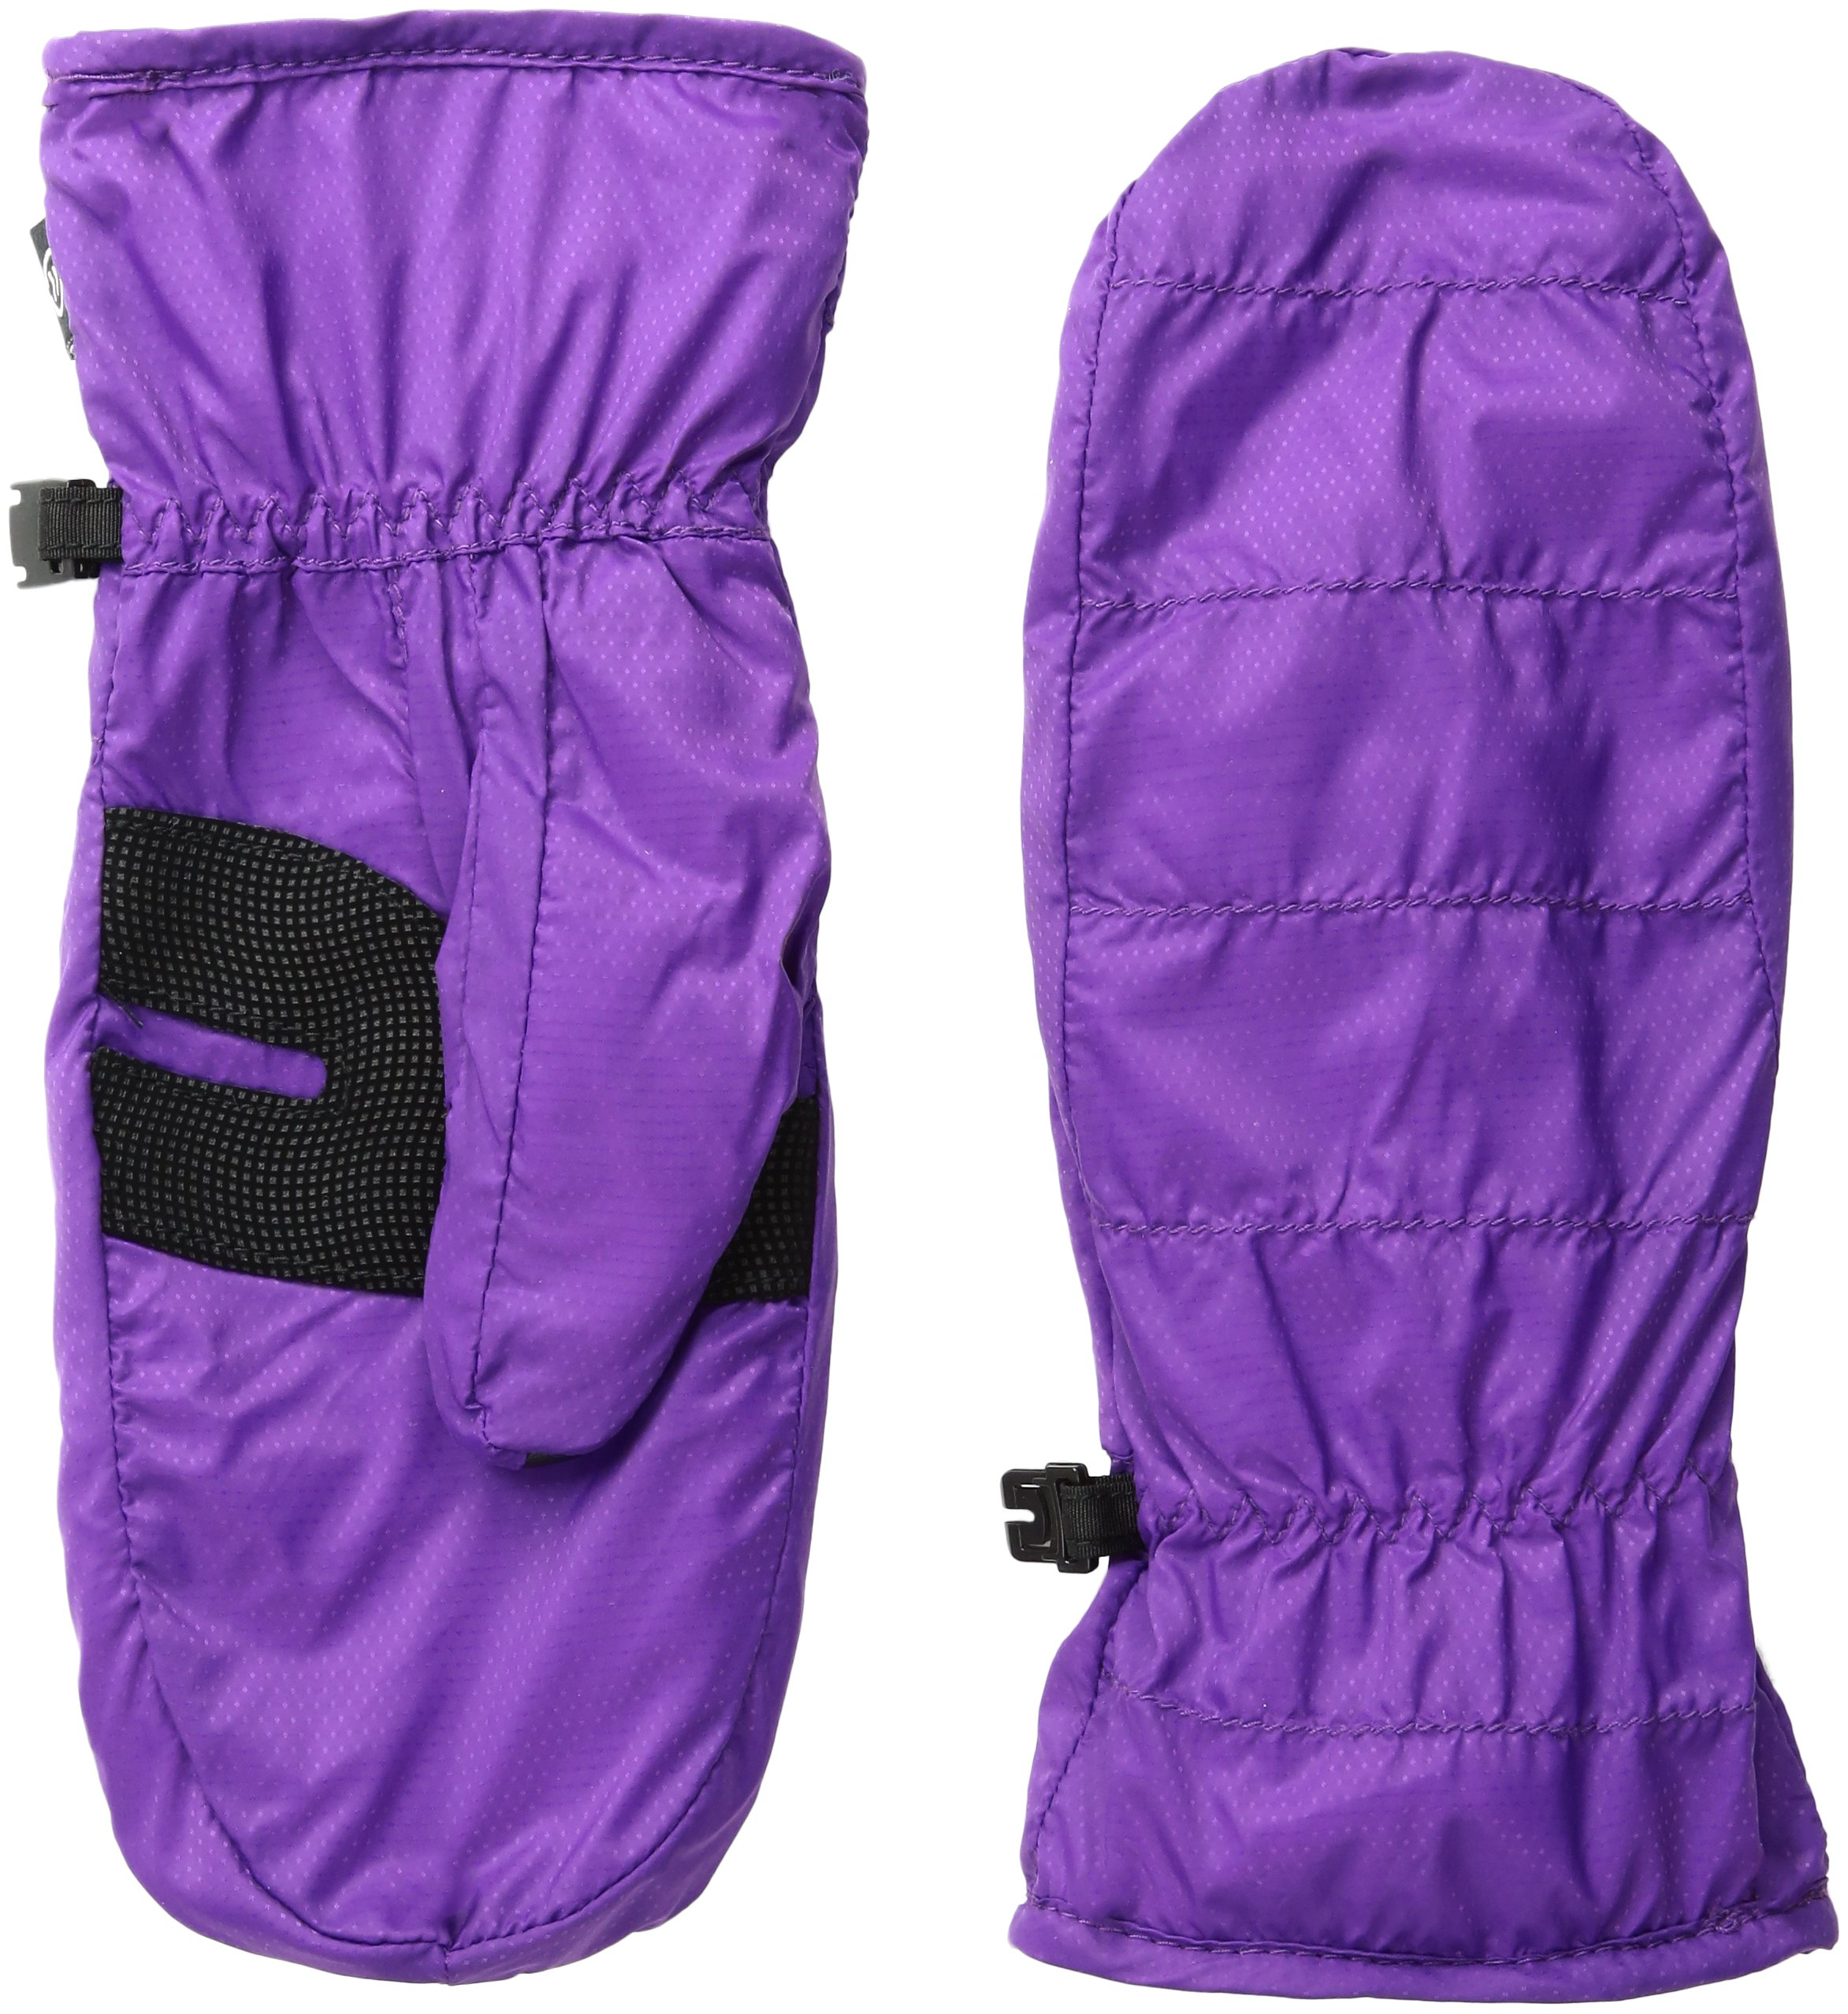 Isotoner Women's smarTouch Packable Mittens with smartDRI, Concord Grape, Medium